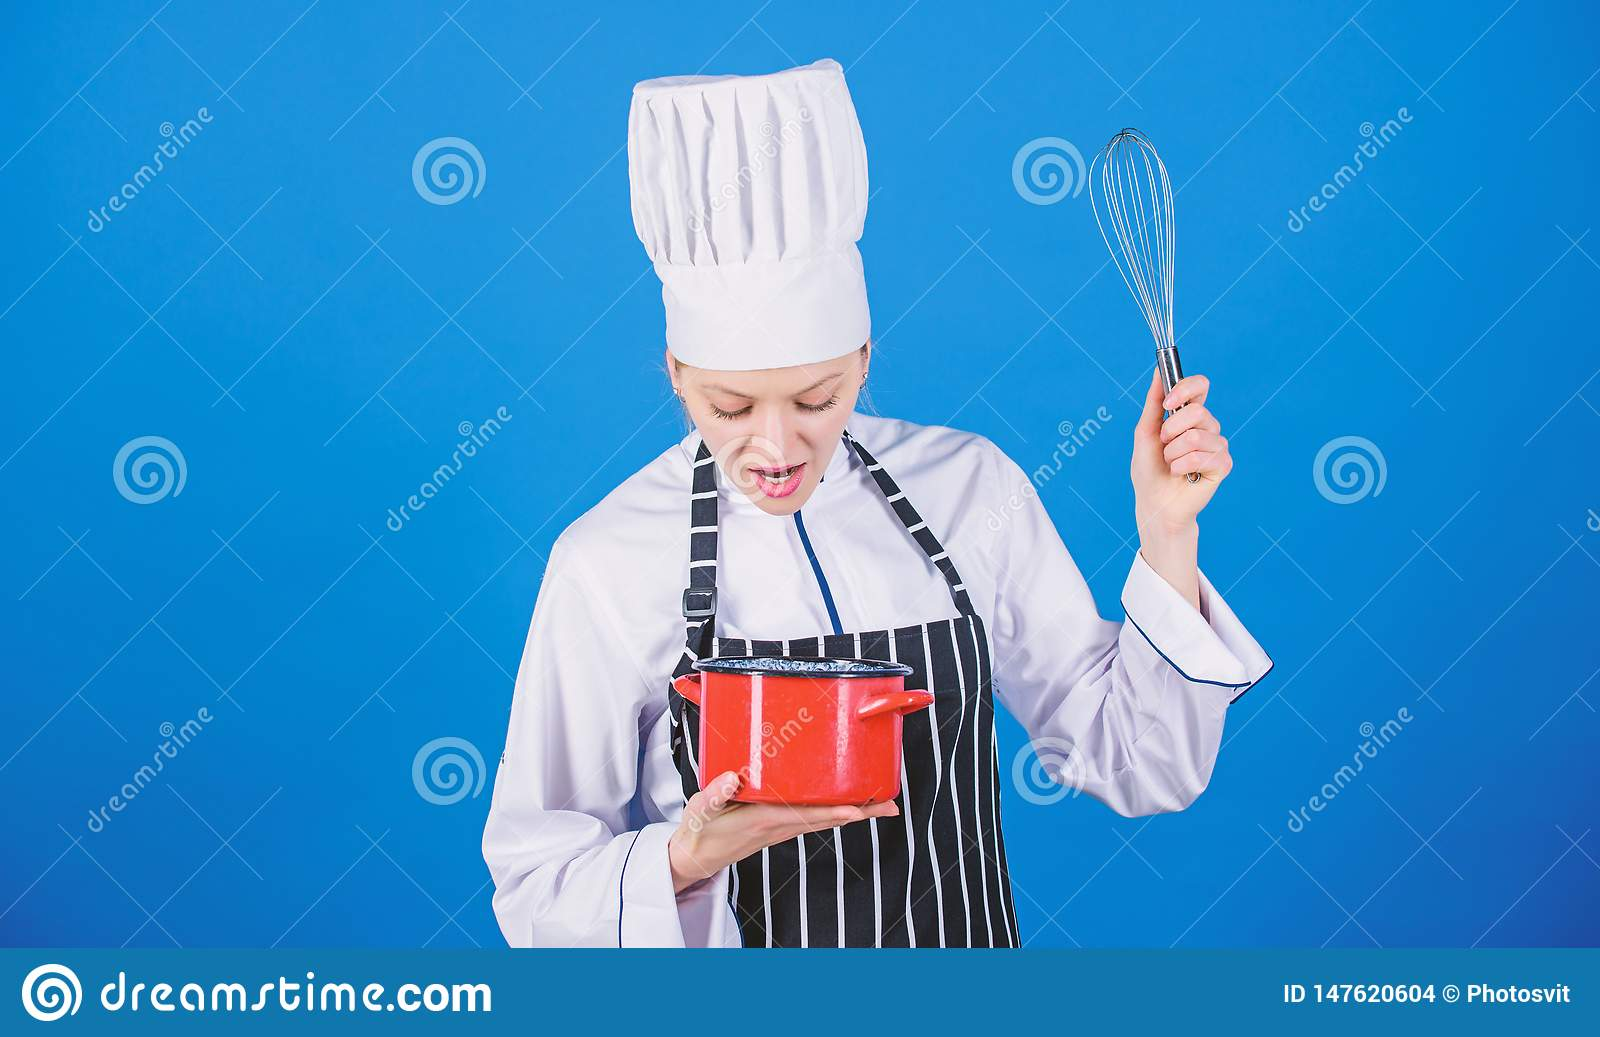 Start slowly whisking whipping or beating cream. Whipping cream tips and tricks. Use hand whisk. Woman professional chef